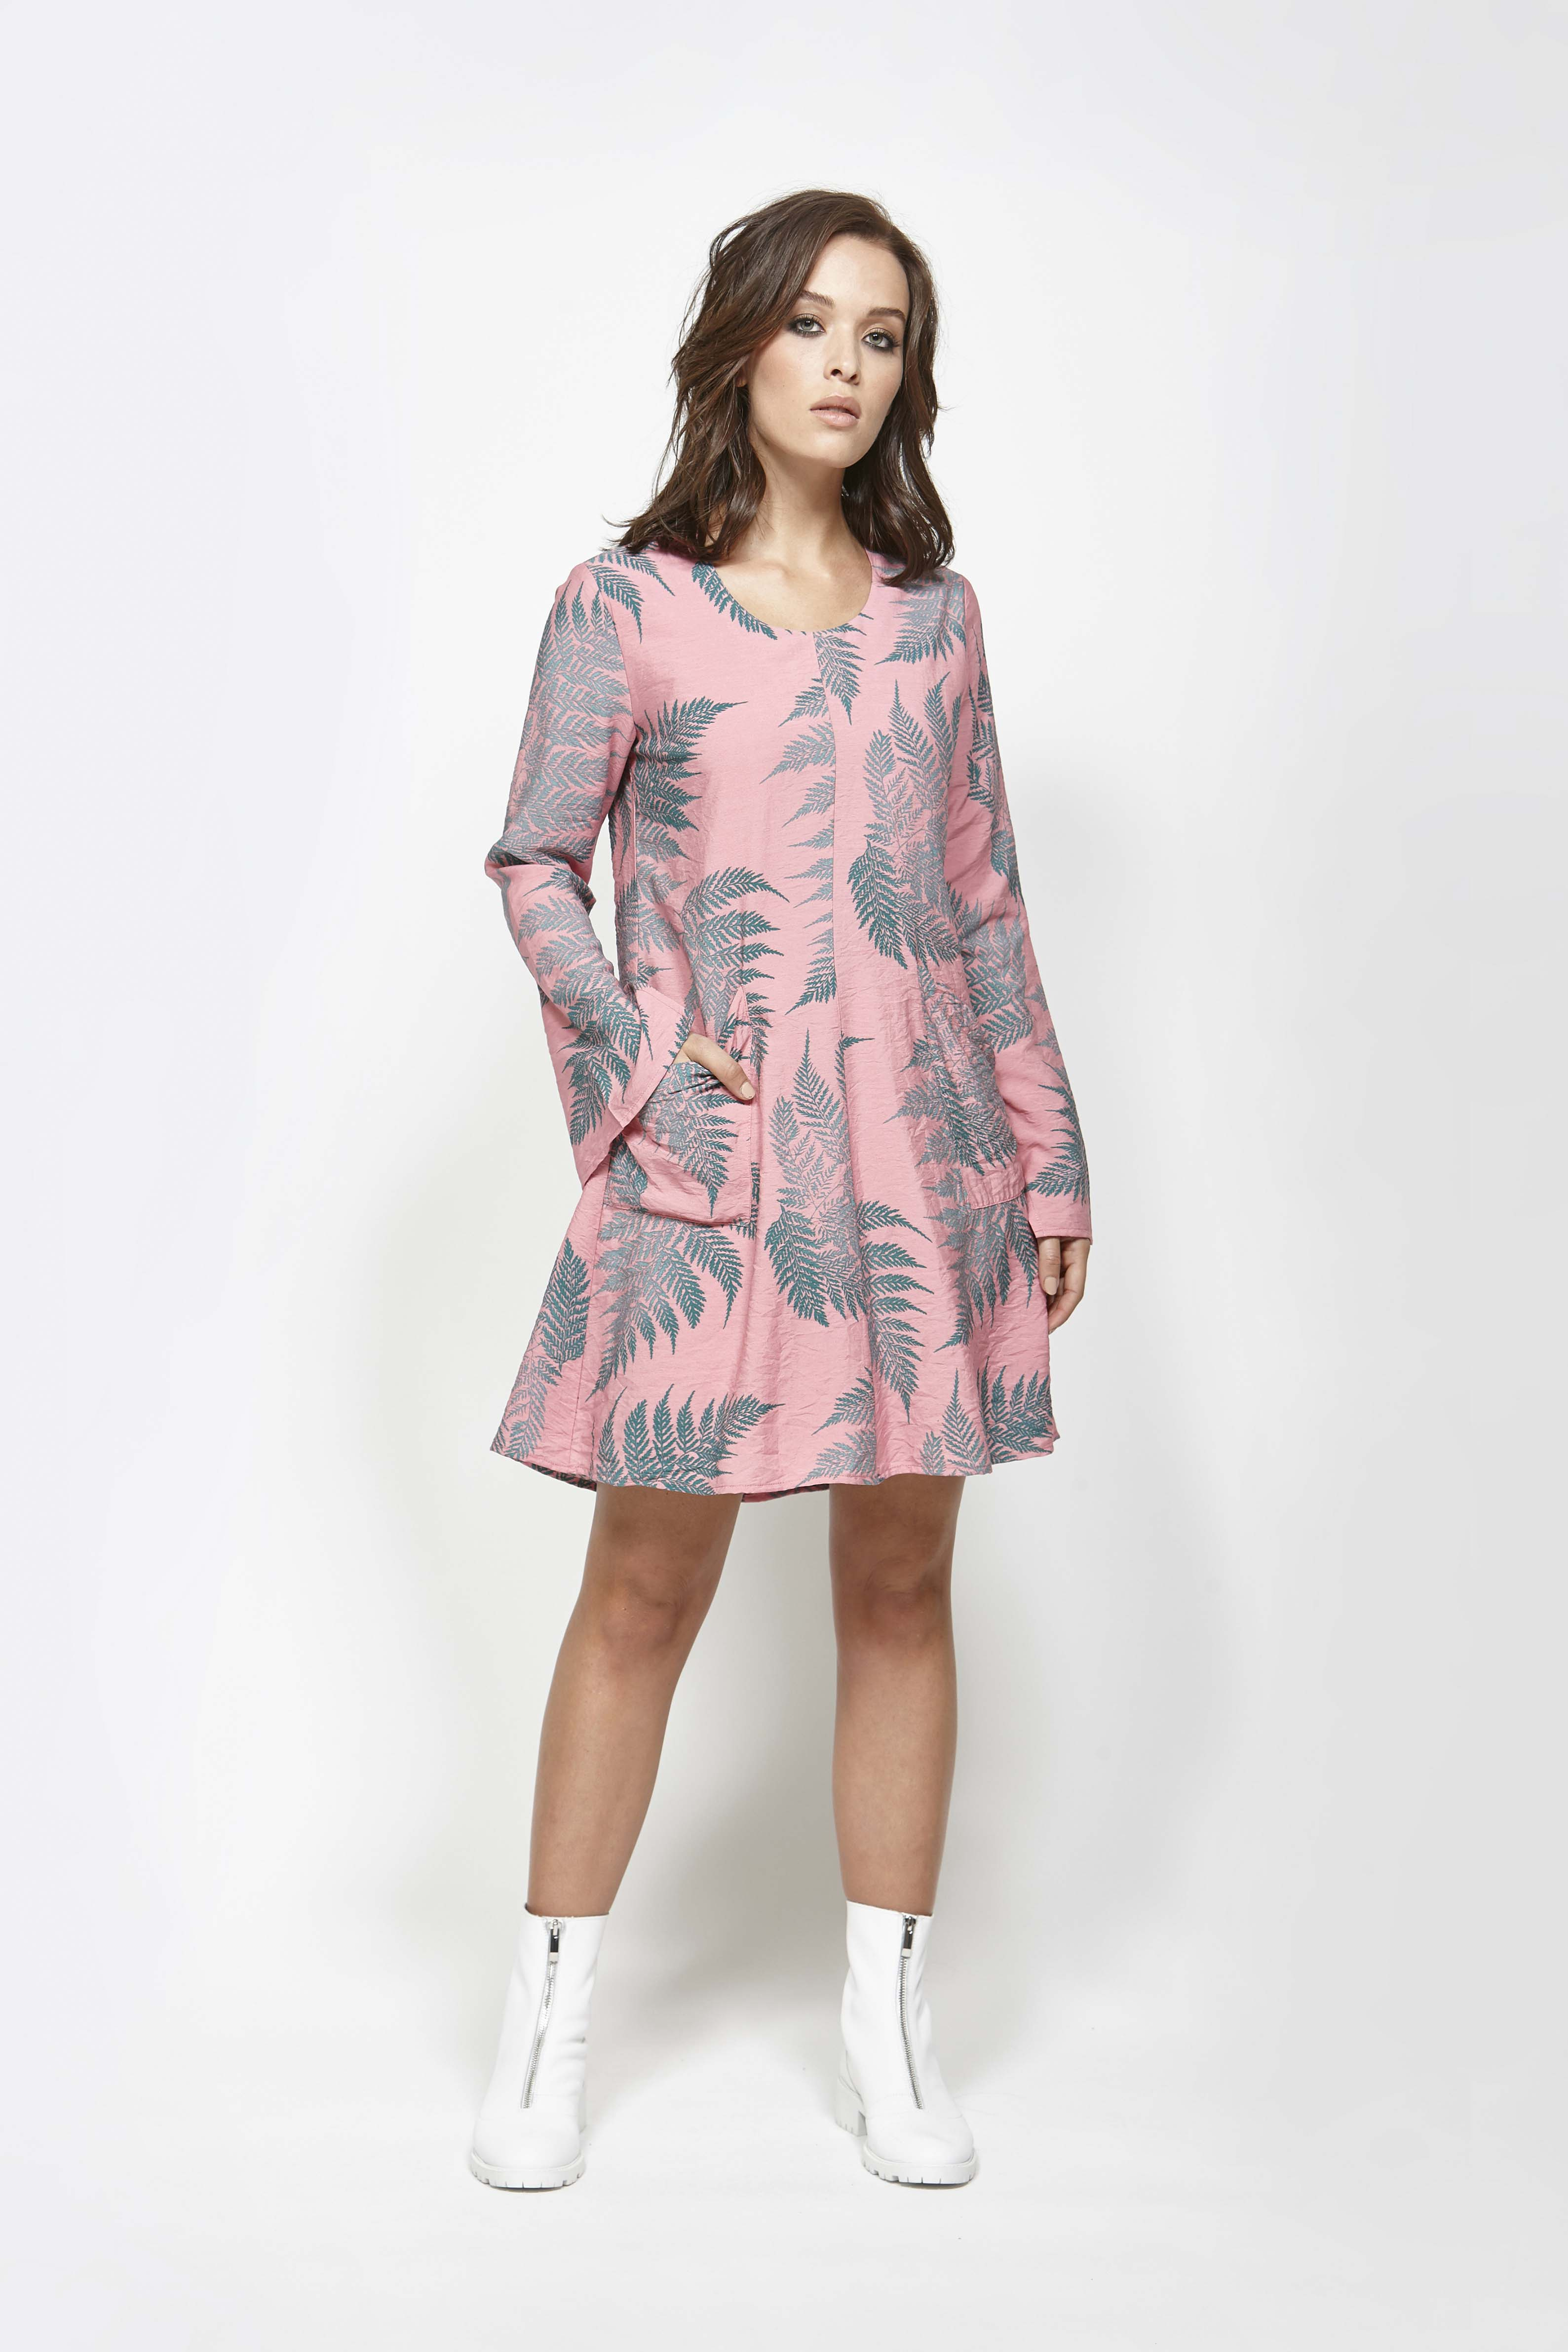 LEO+BE LB1350 Moment Dress, RRP$159.00